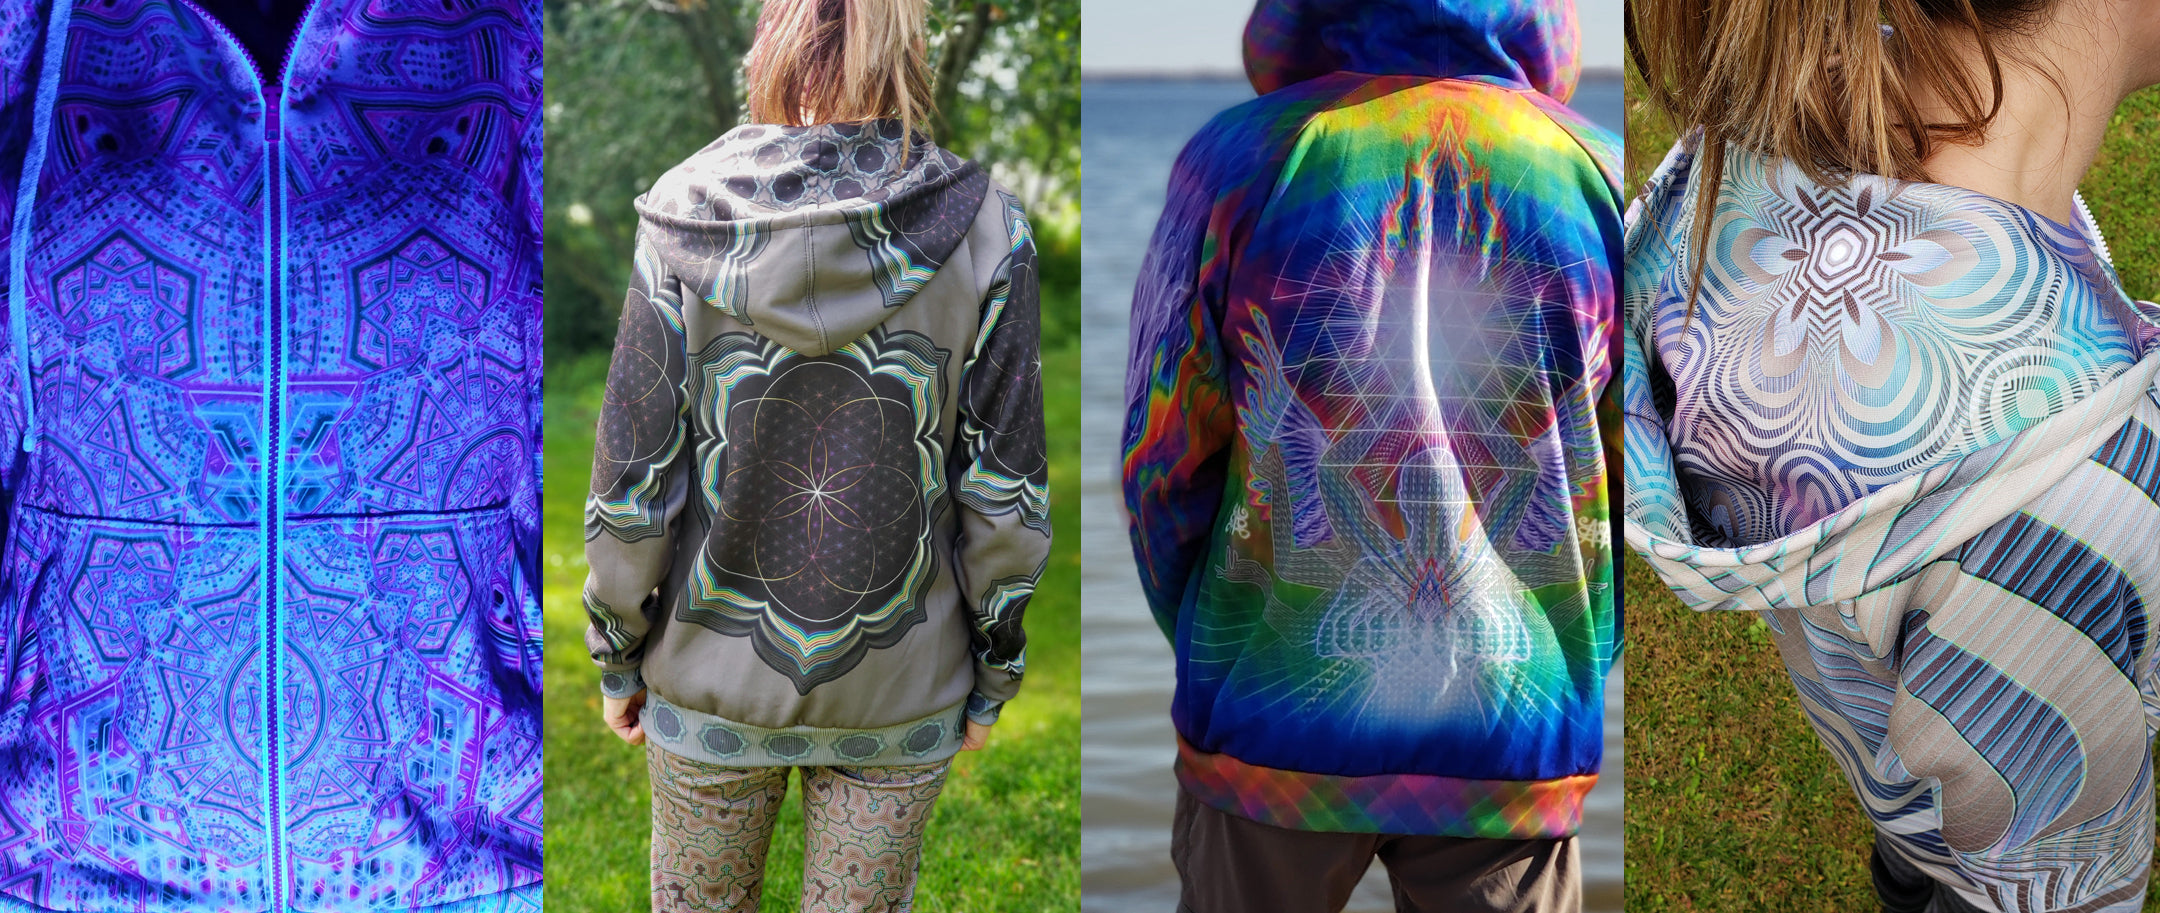 Psychedelic Hoodies (UV Reactive) by Tetramode | Modern Psy Fashion